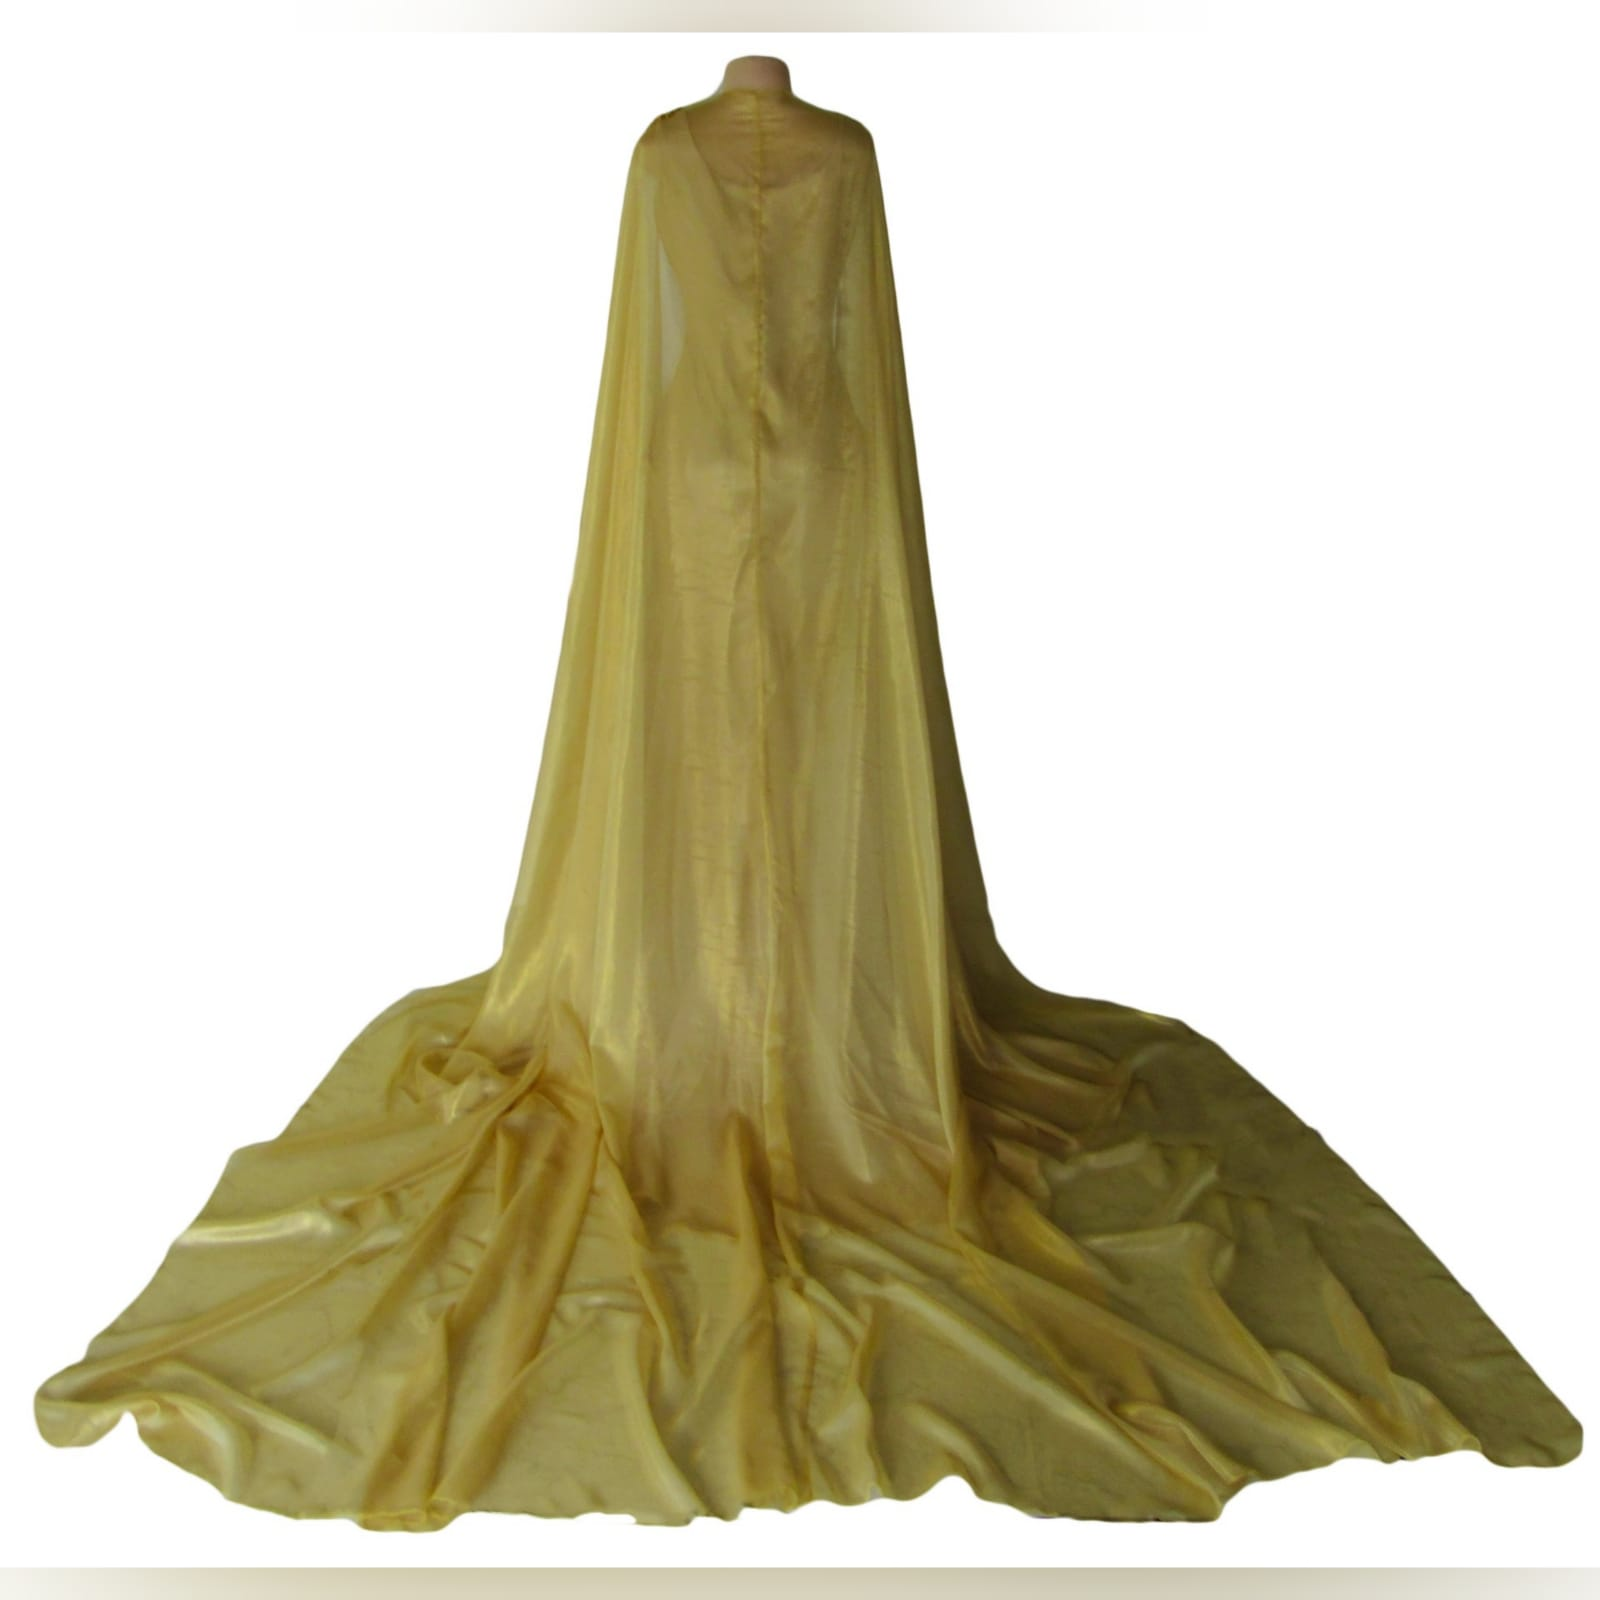 Gold long goddess inspired prom dress 6 gold long goddess inspired prom dress. Long fitted dress with a high slit and a train. With bust detailed with gold beads and a chiffon cowl neck, with a dramatic chiffon cape beaded on the shoulders. With a long train.